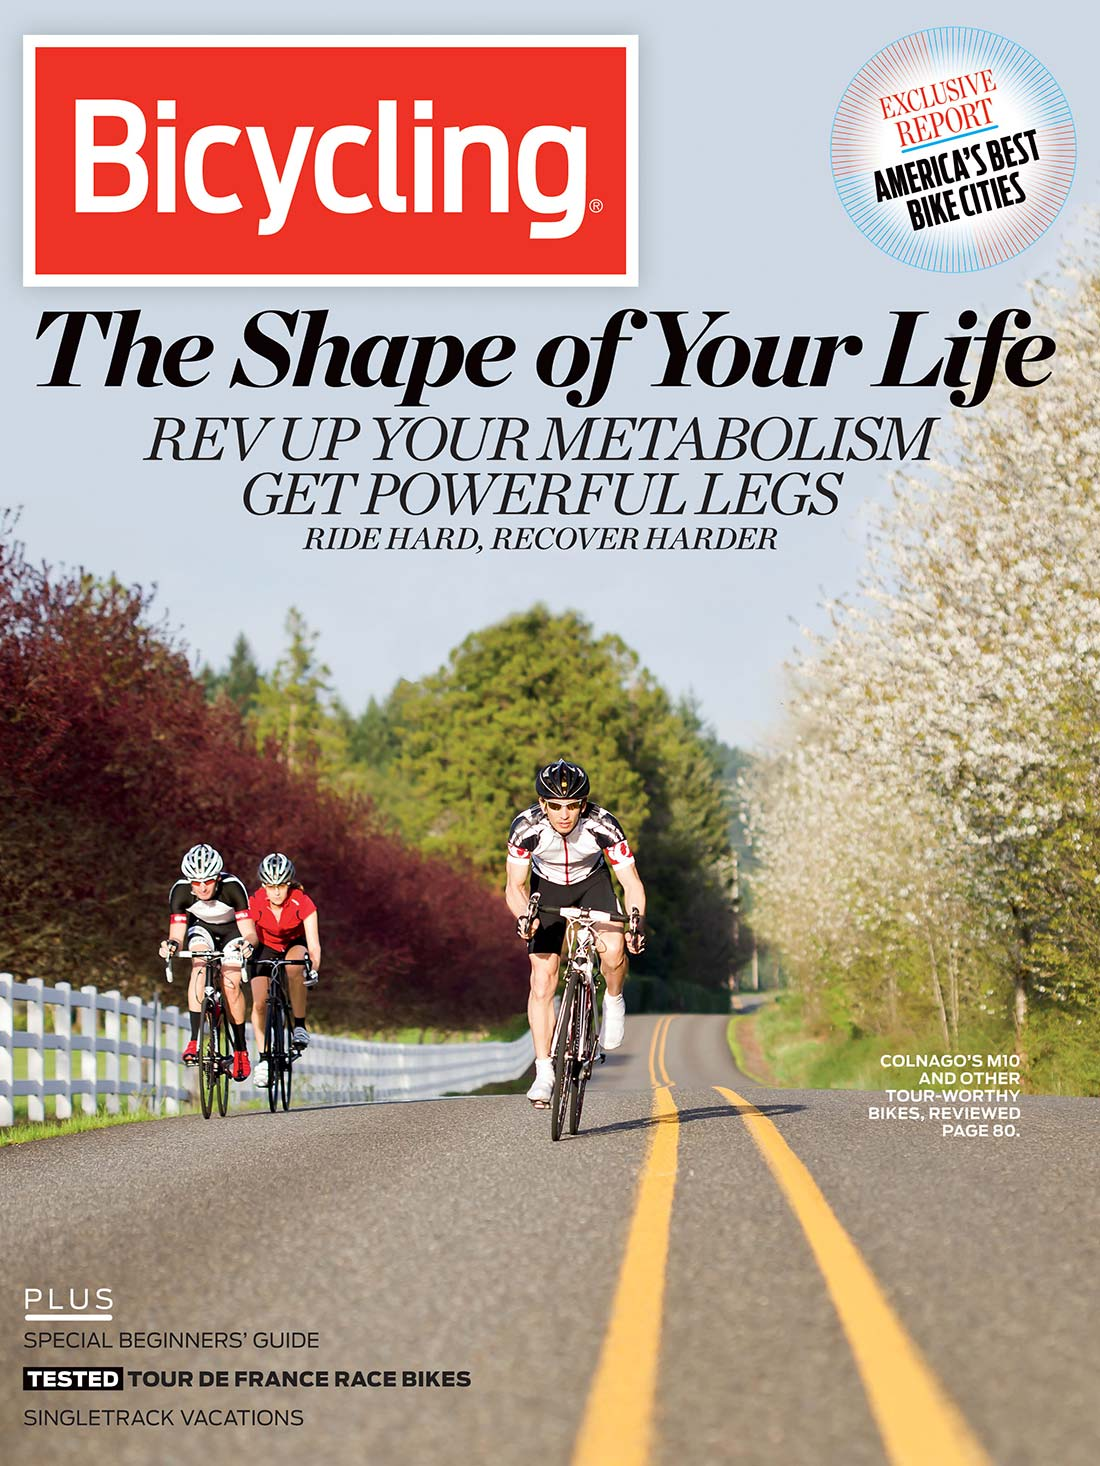 VeloDramatic Cover Image Bicycling Magazine July 2012